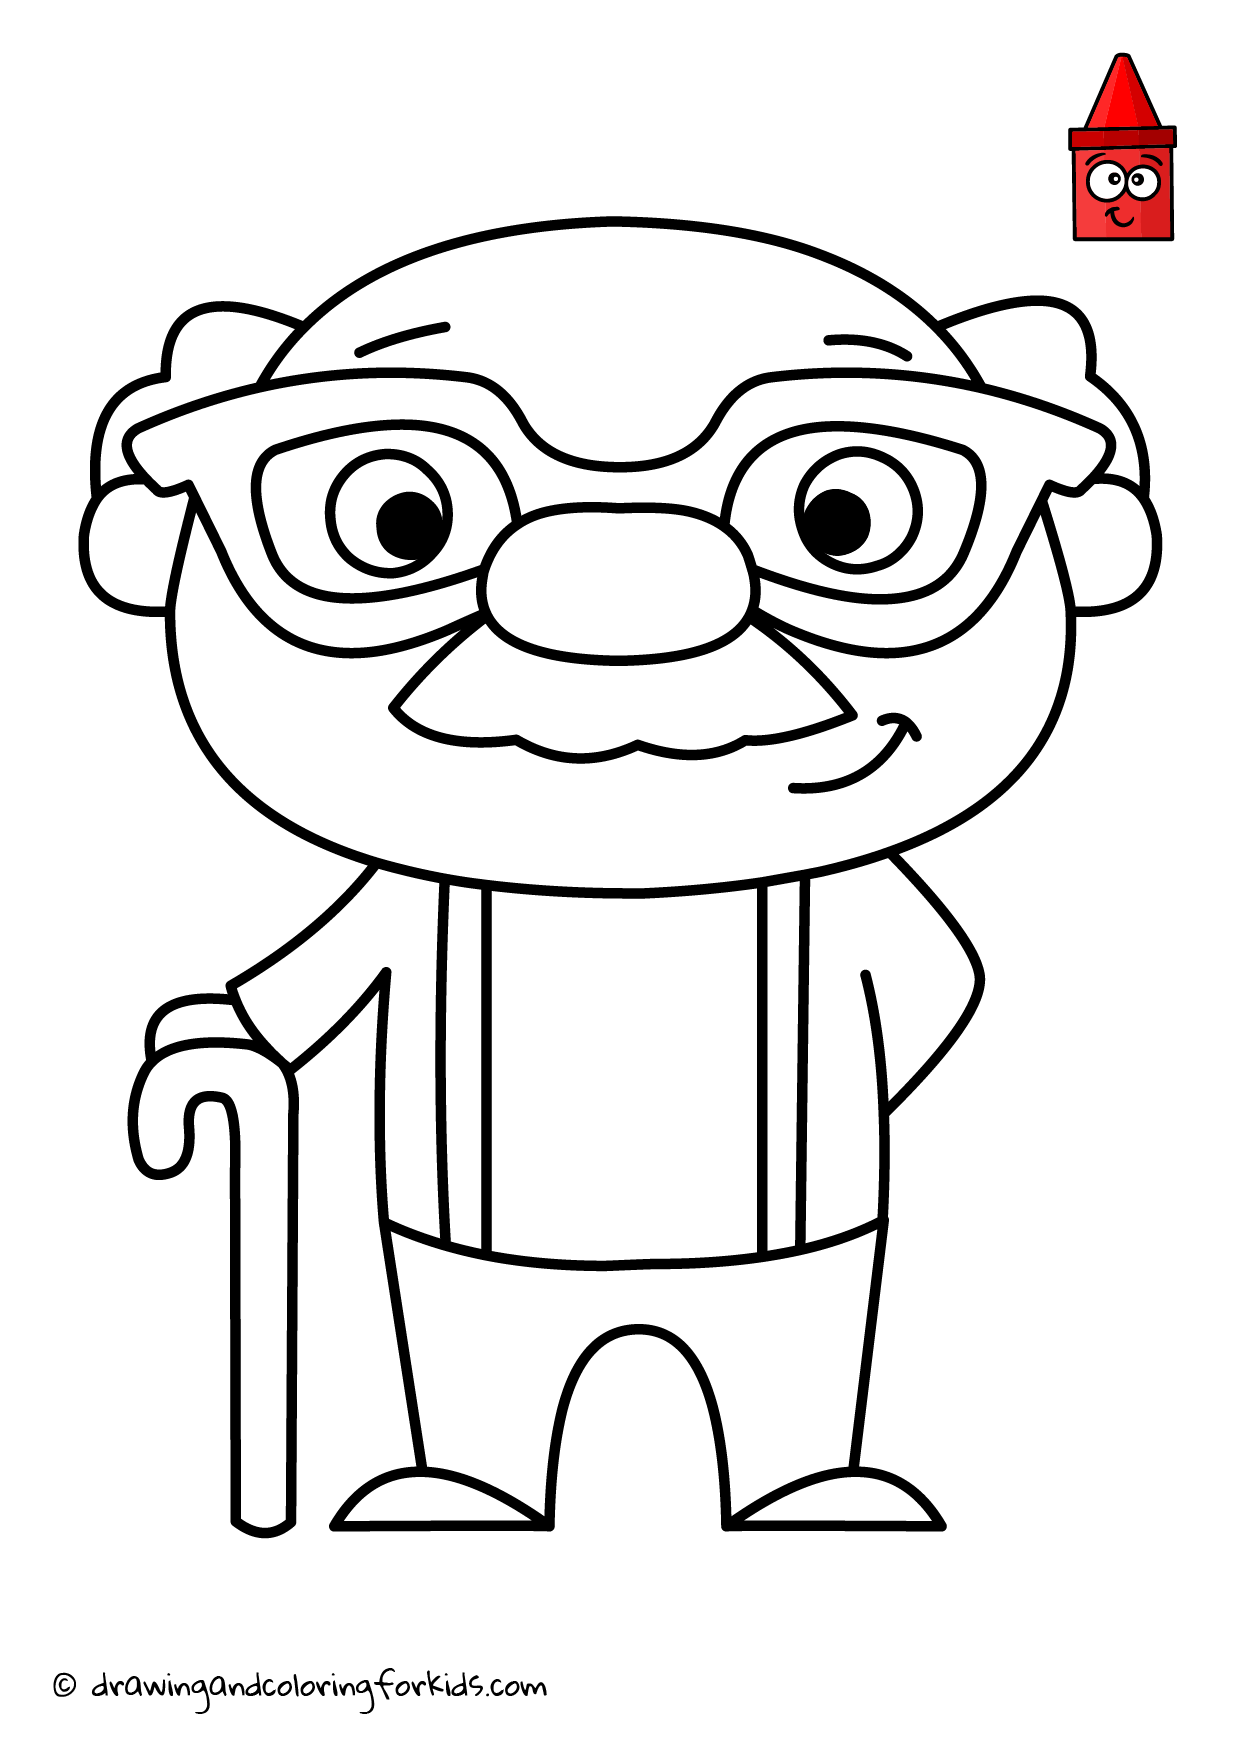 Grandpa Drawing Drawing Grandparents Funny Grandfather Grandparents Day Coloring Pages For Kids Coloring For Kids Drawings